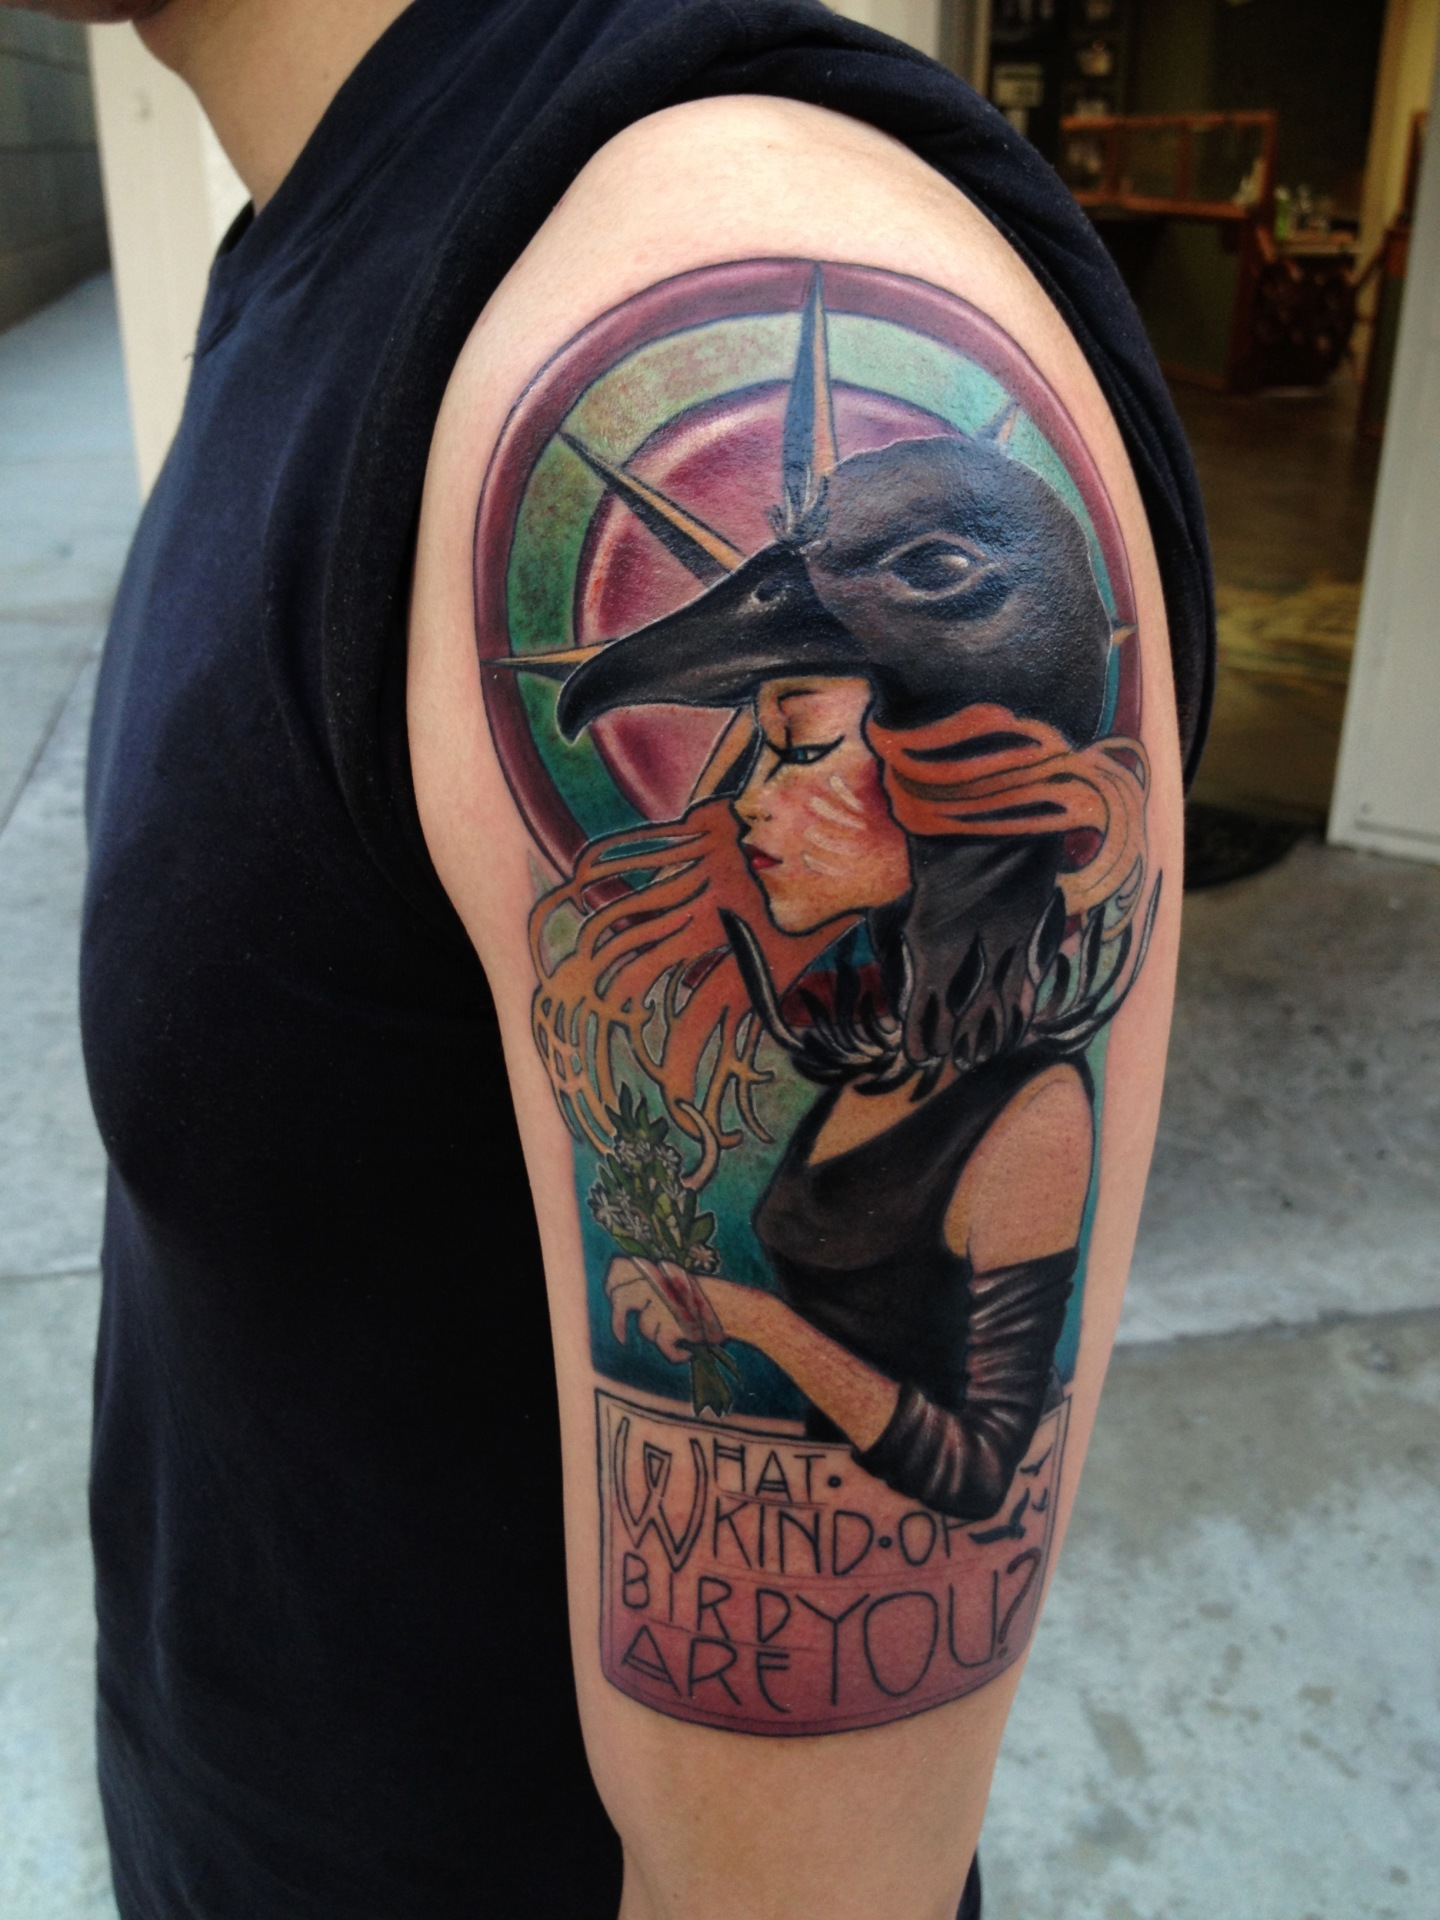 art nouveau, art nouveau tattoo, tattoo, tatouage, tatuaje, moonrise kingdom tattoo, portrait